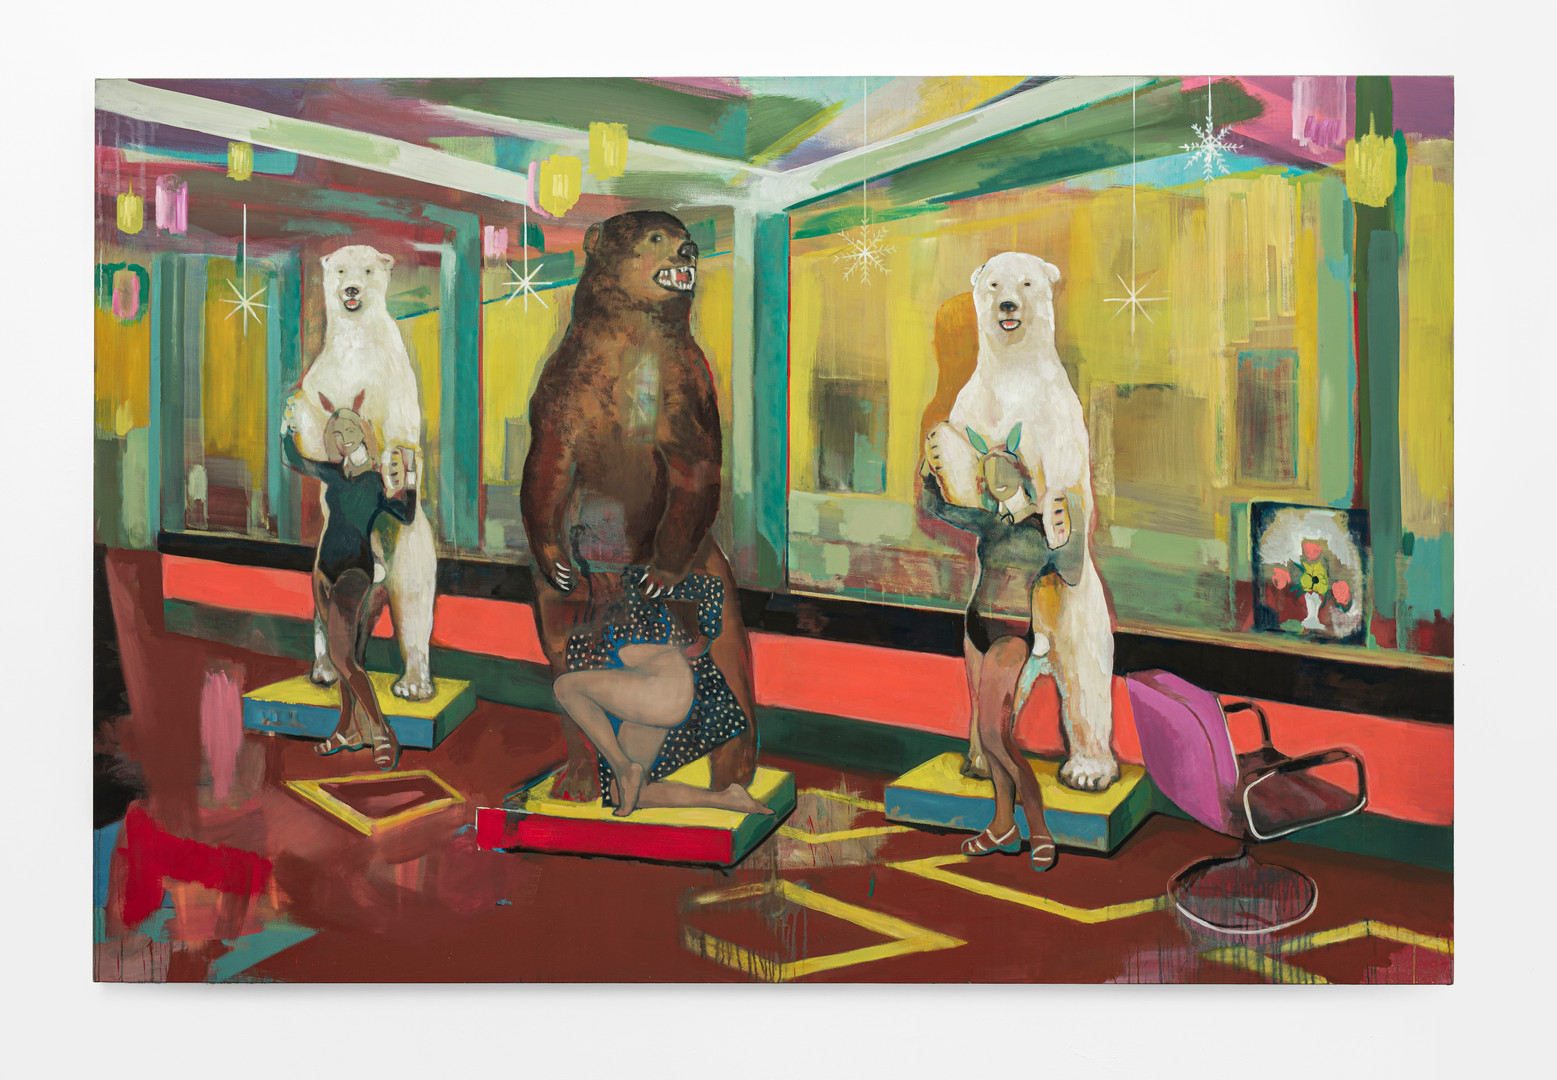 Kate Gottgens | There Is No Ice (for my drink) | 2020 | Oil on Canvas | 200 x 300 cm